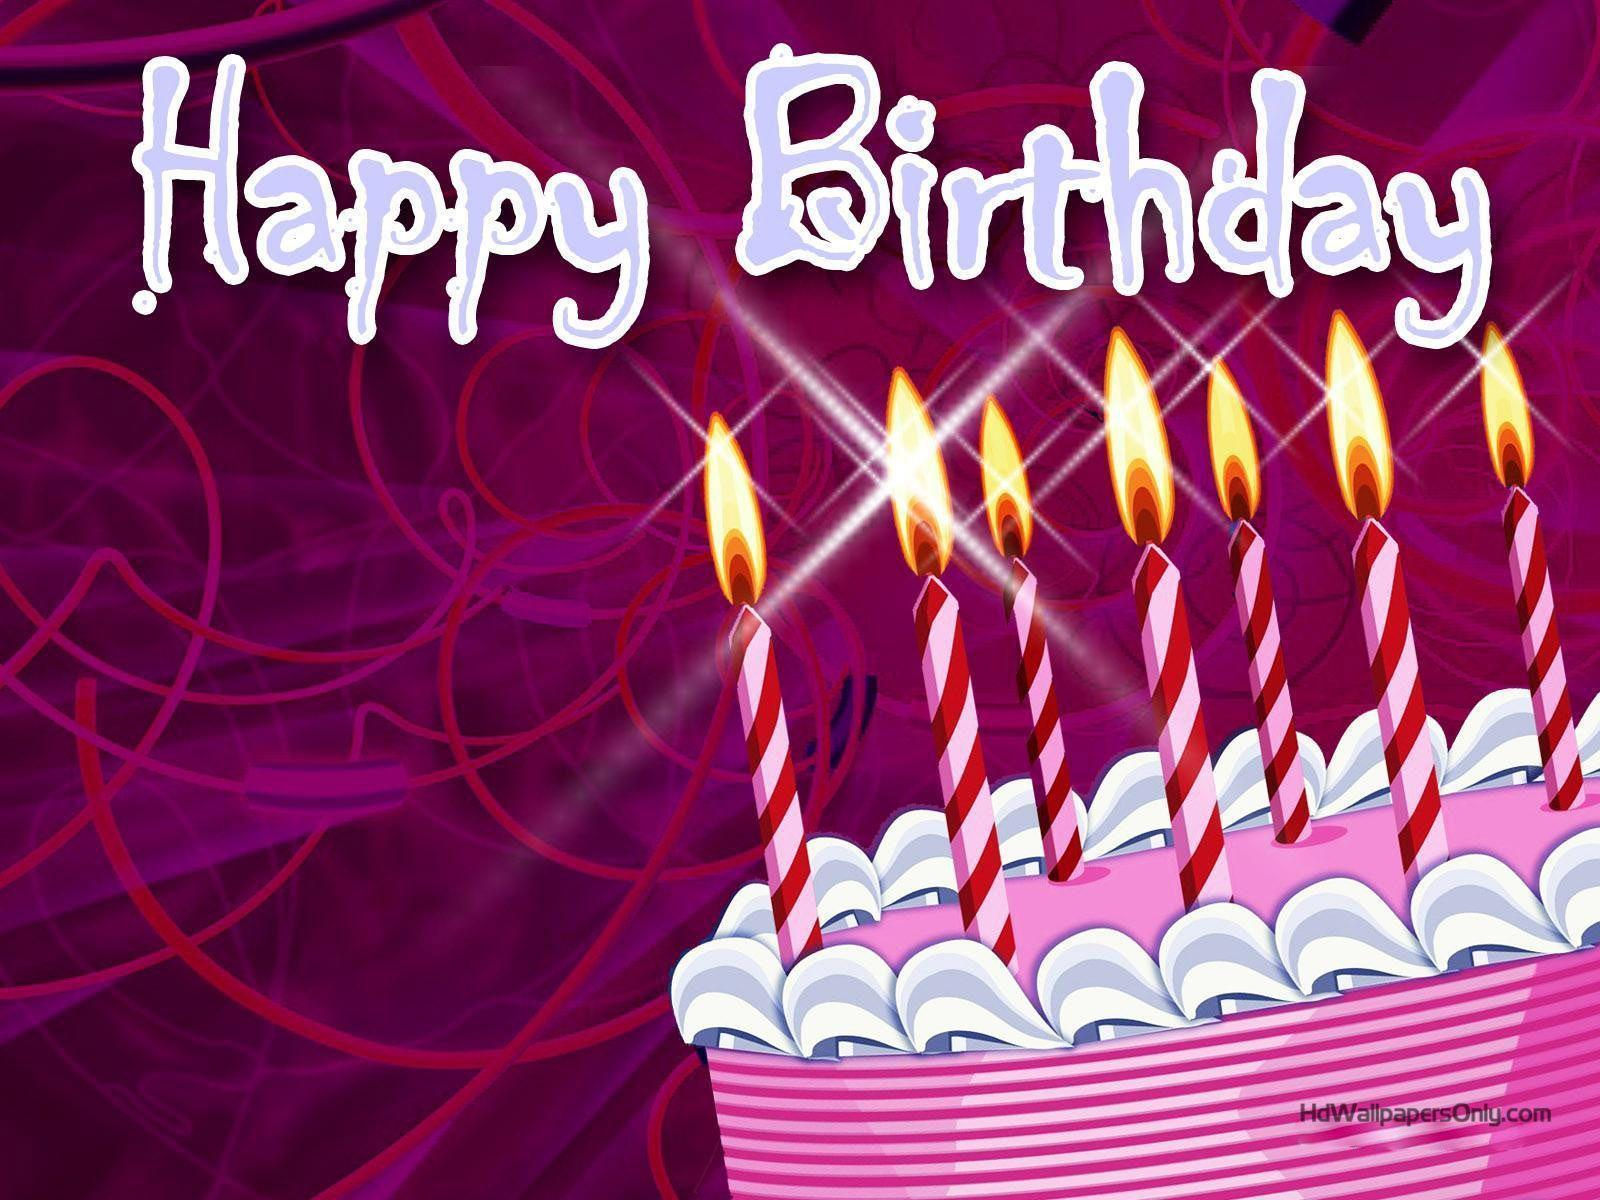 Happy Birthday Wallpapers With Name - Wallpaper cave